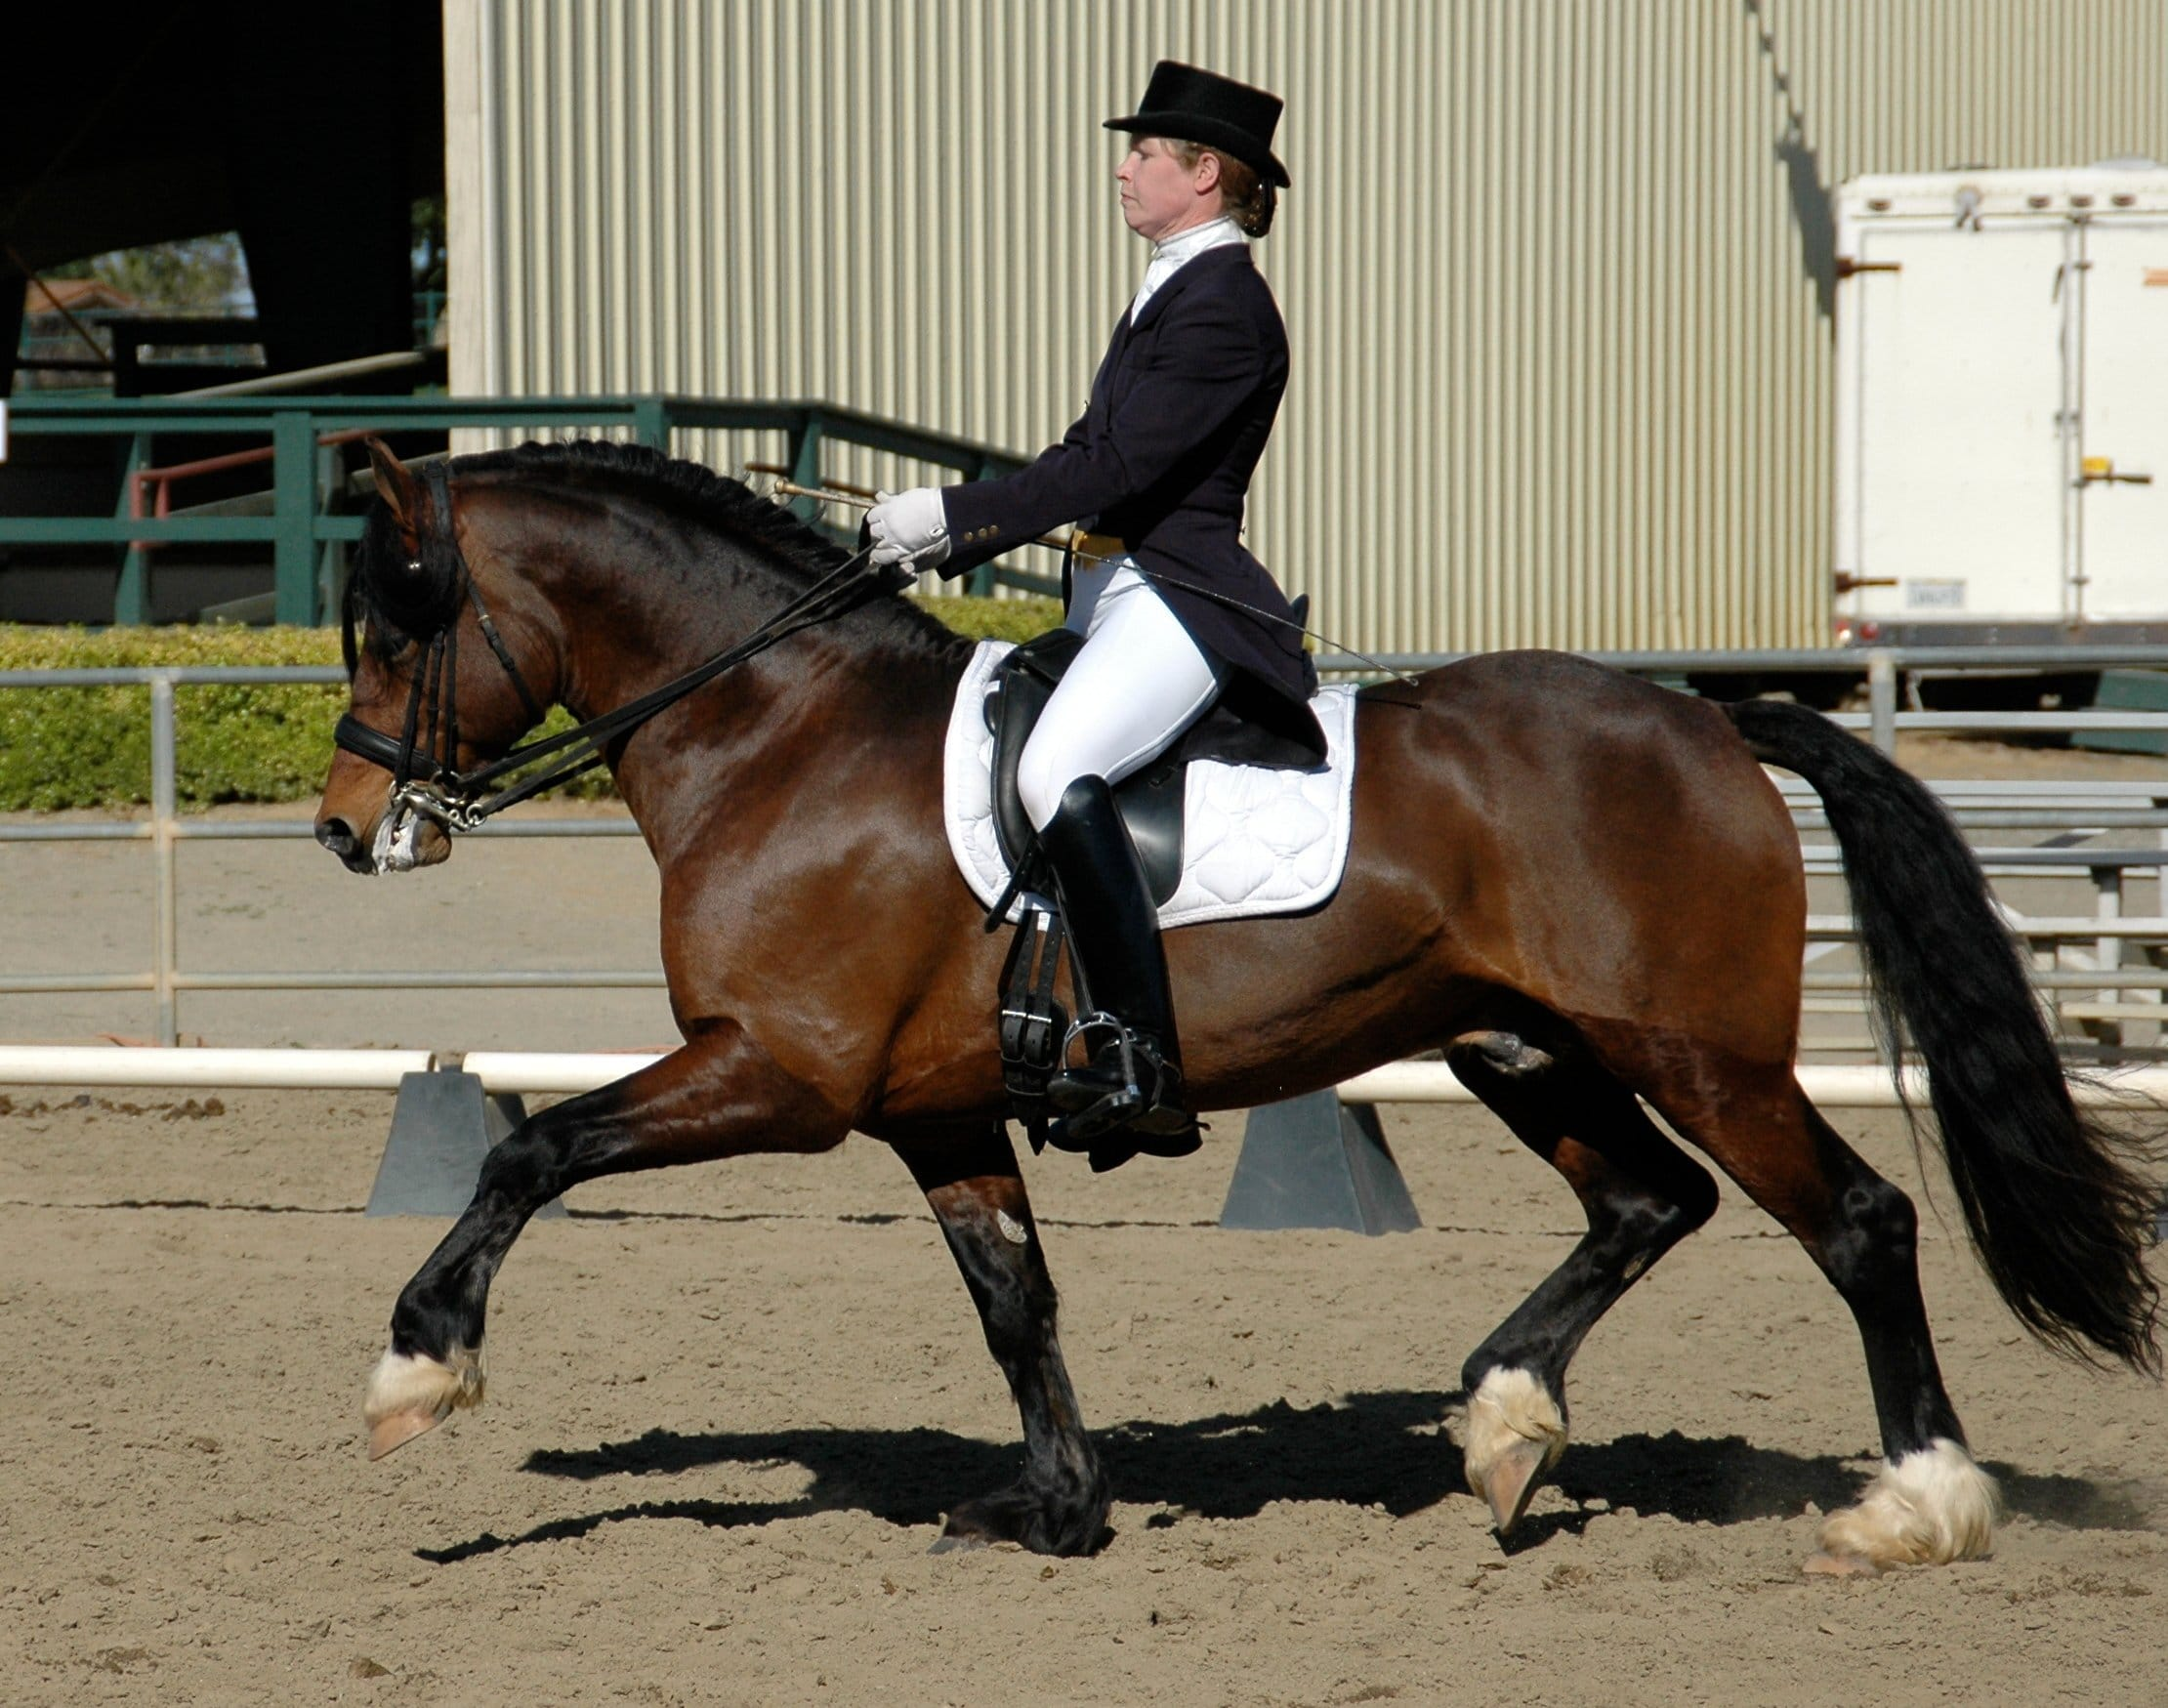 rider wearing top hat, barefoot vs shoeing